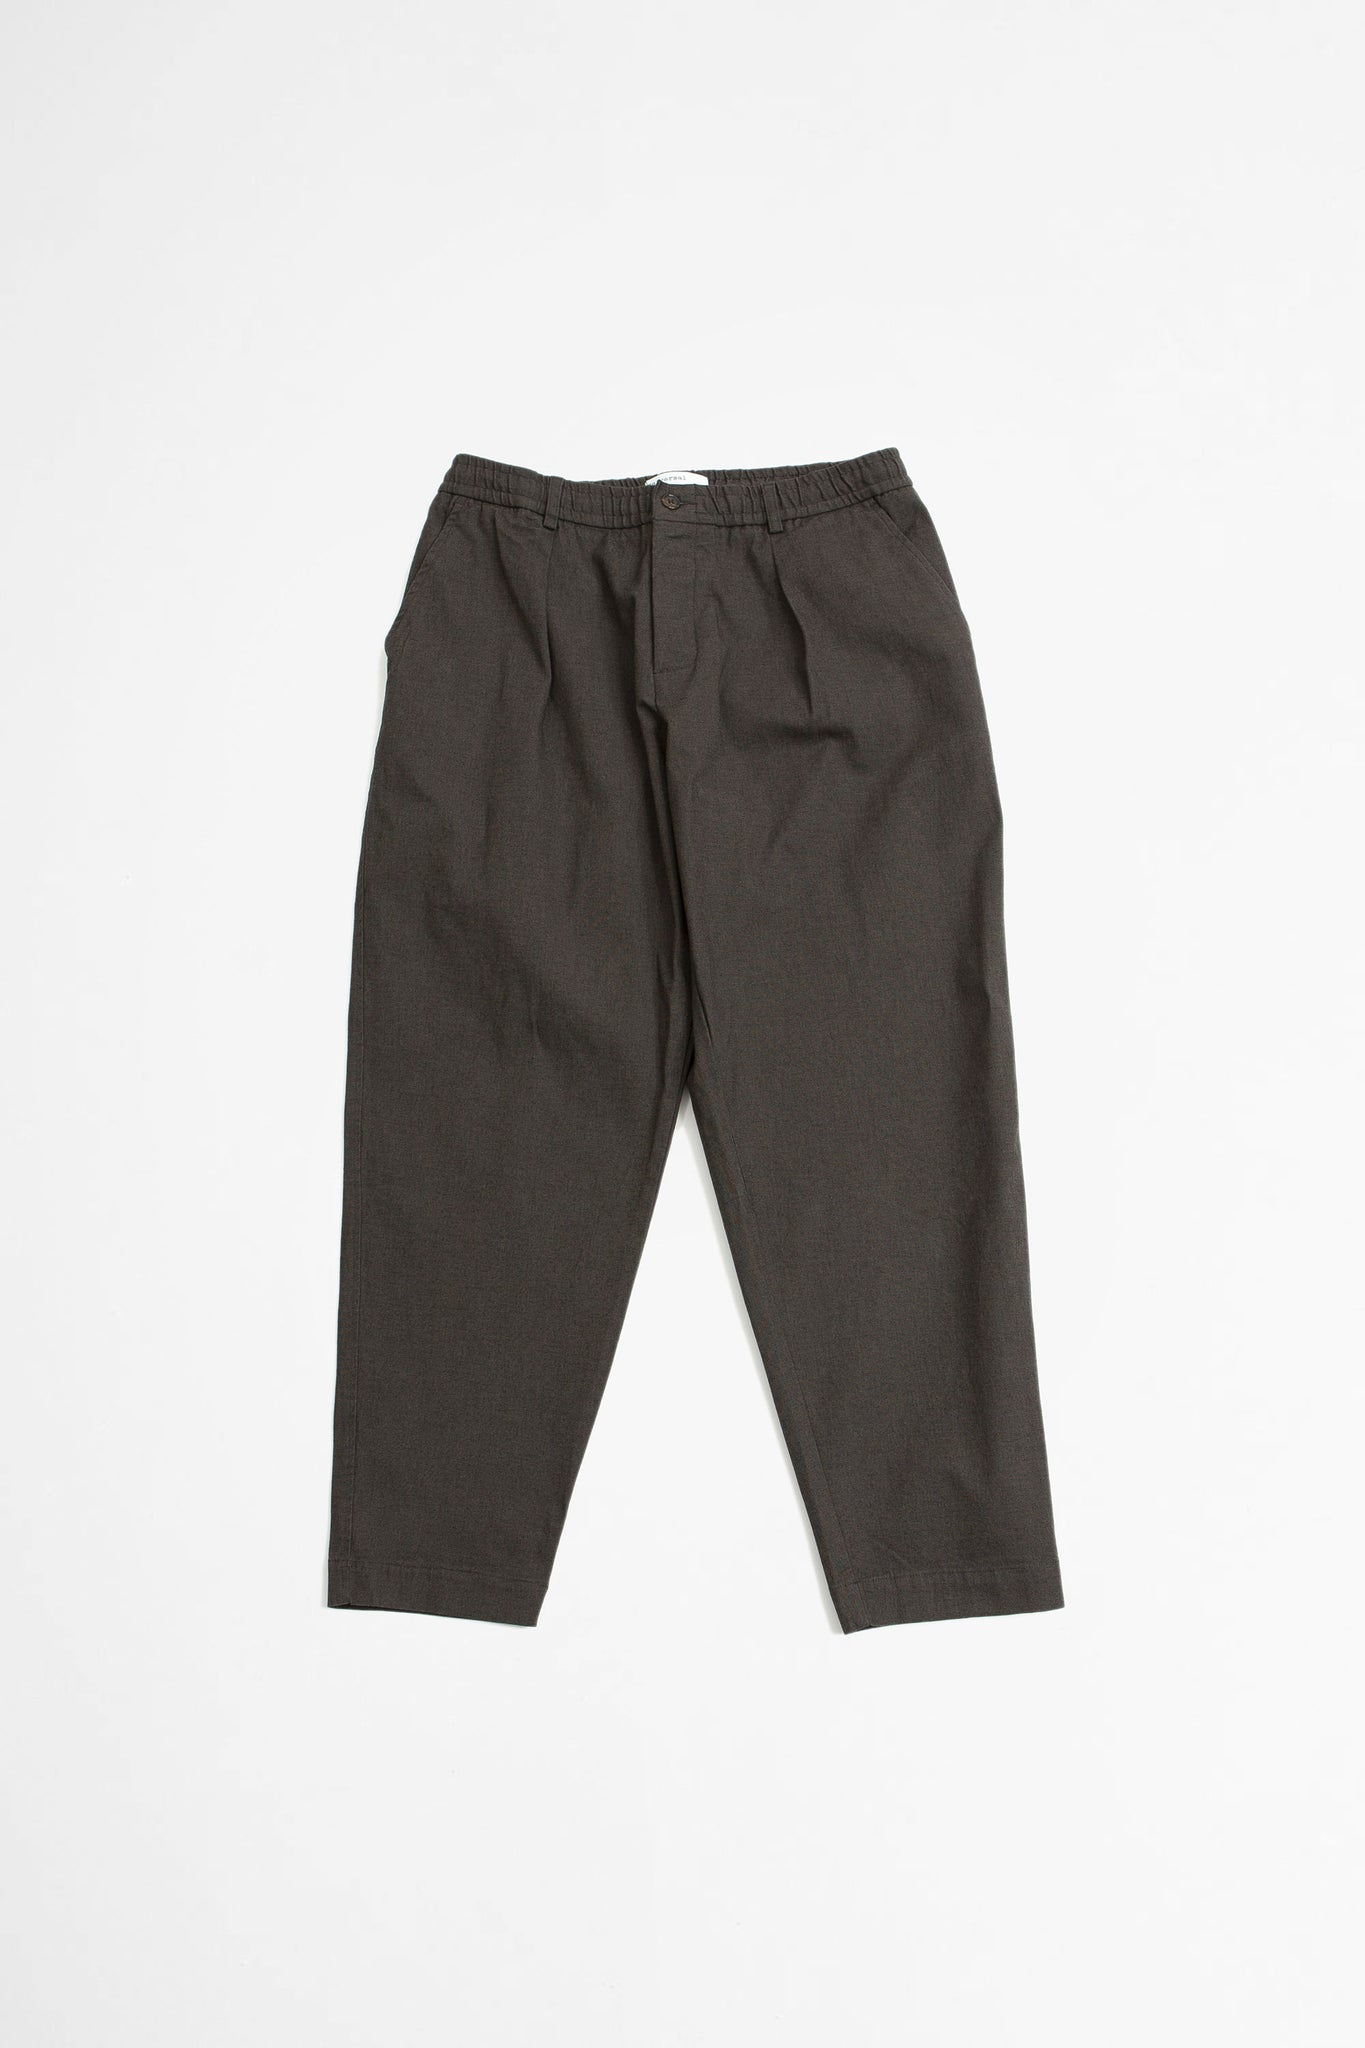 Pleated track pant tinto cotton chocolate